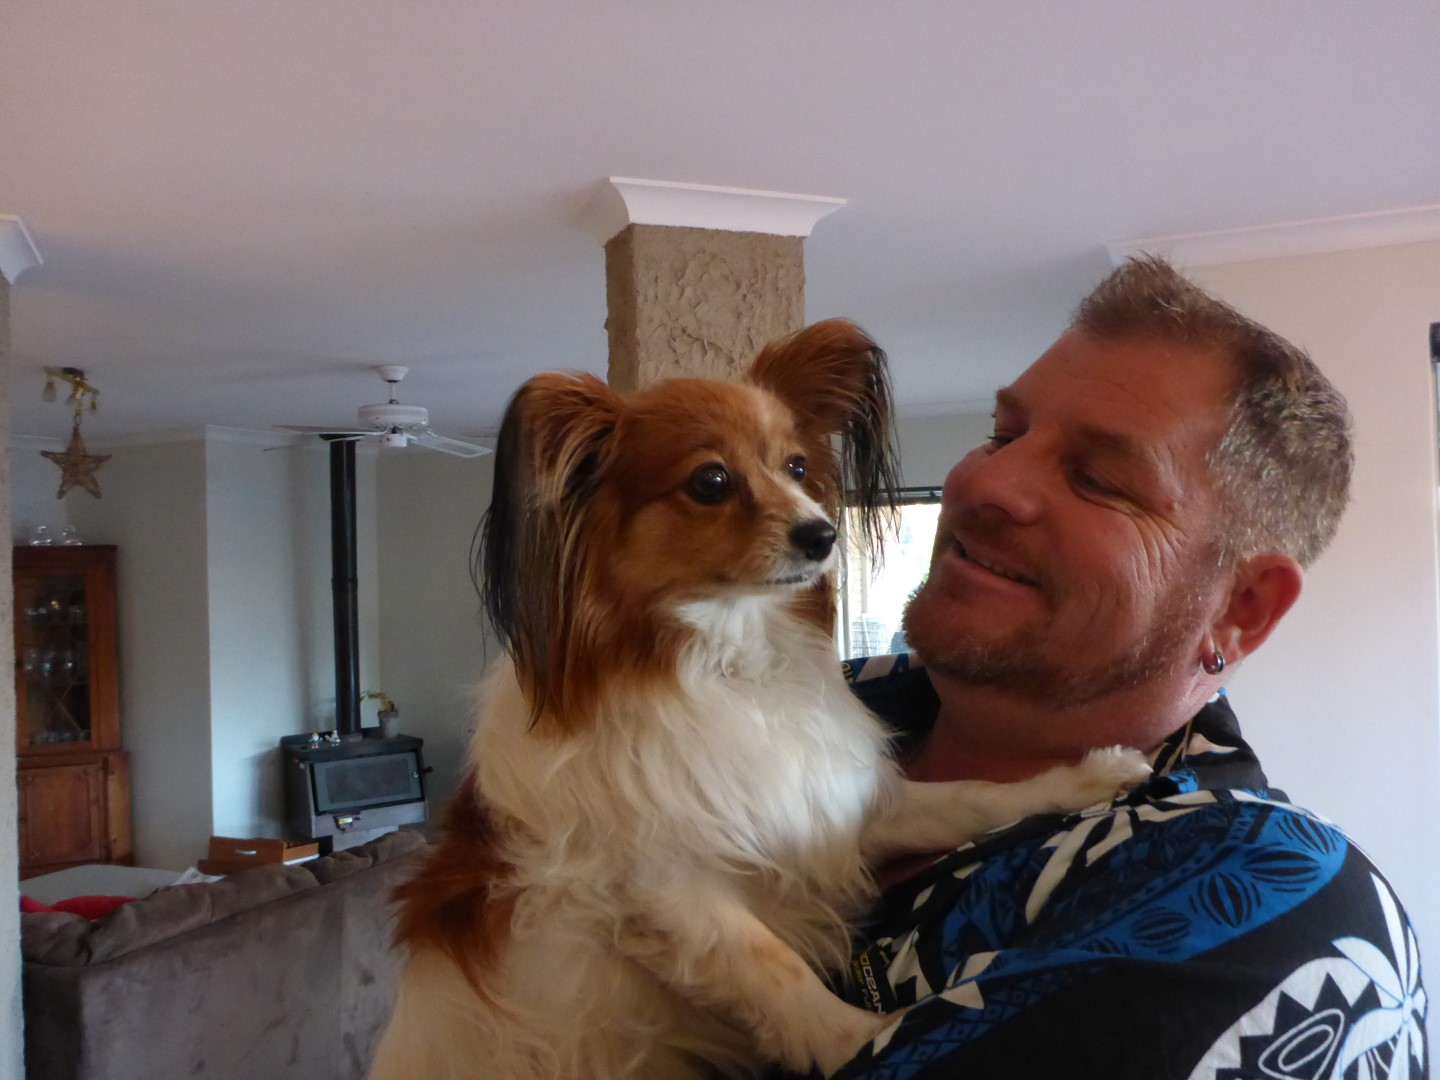 Paul and one of the family pets, a Papillion dog.